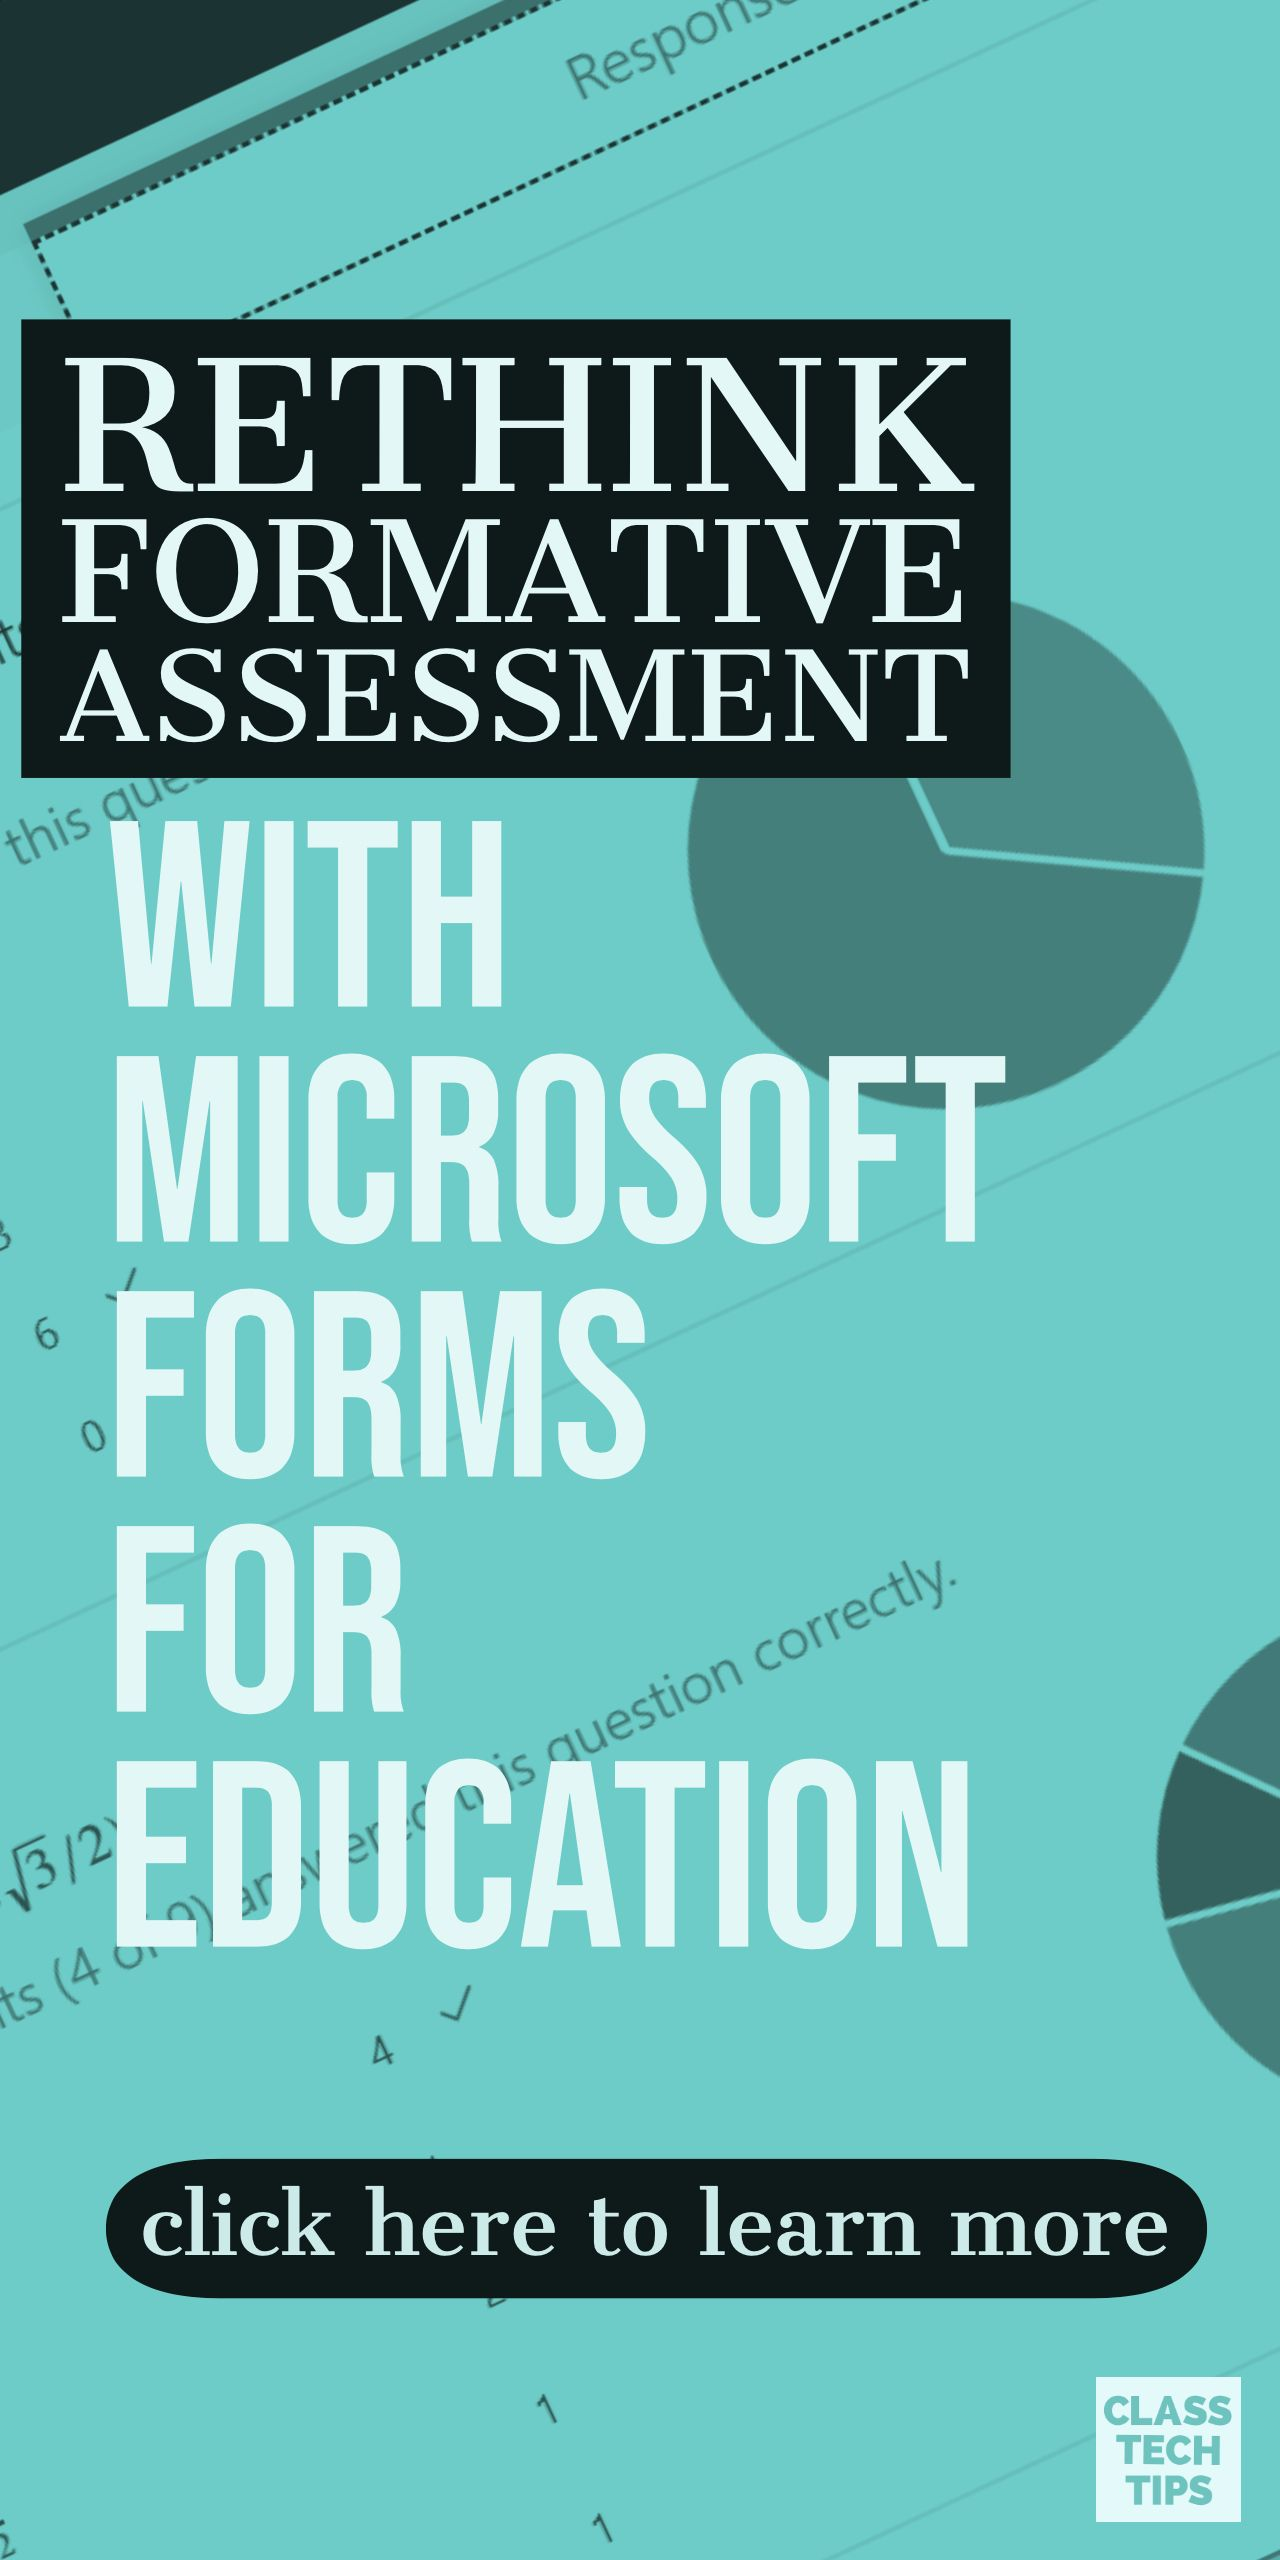 Rethink Formative Assessment with Microsoft Forms